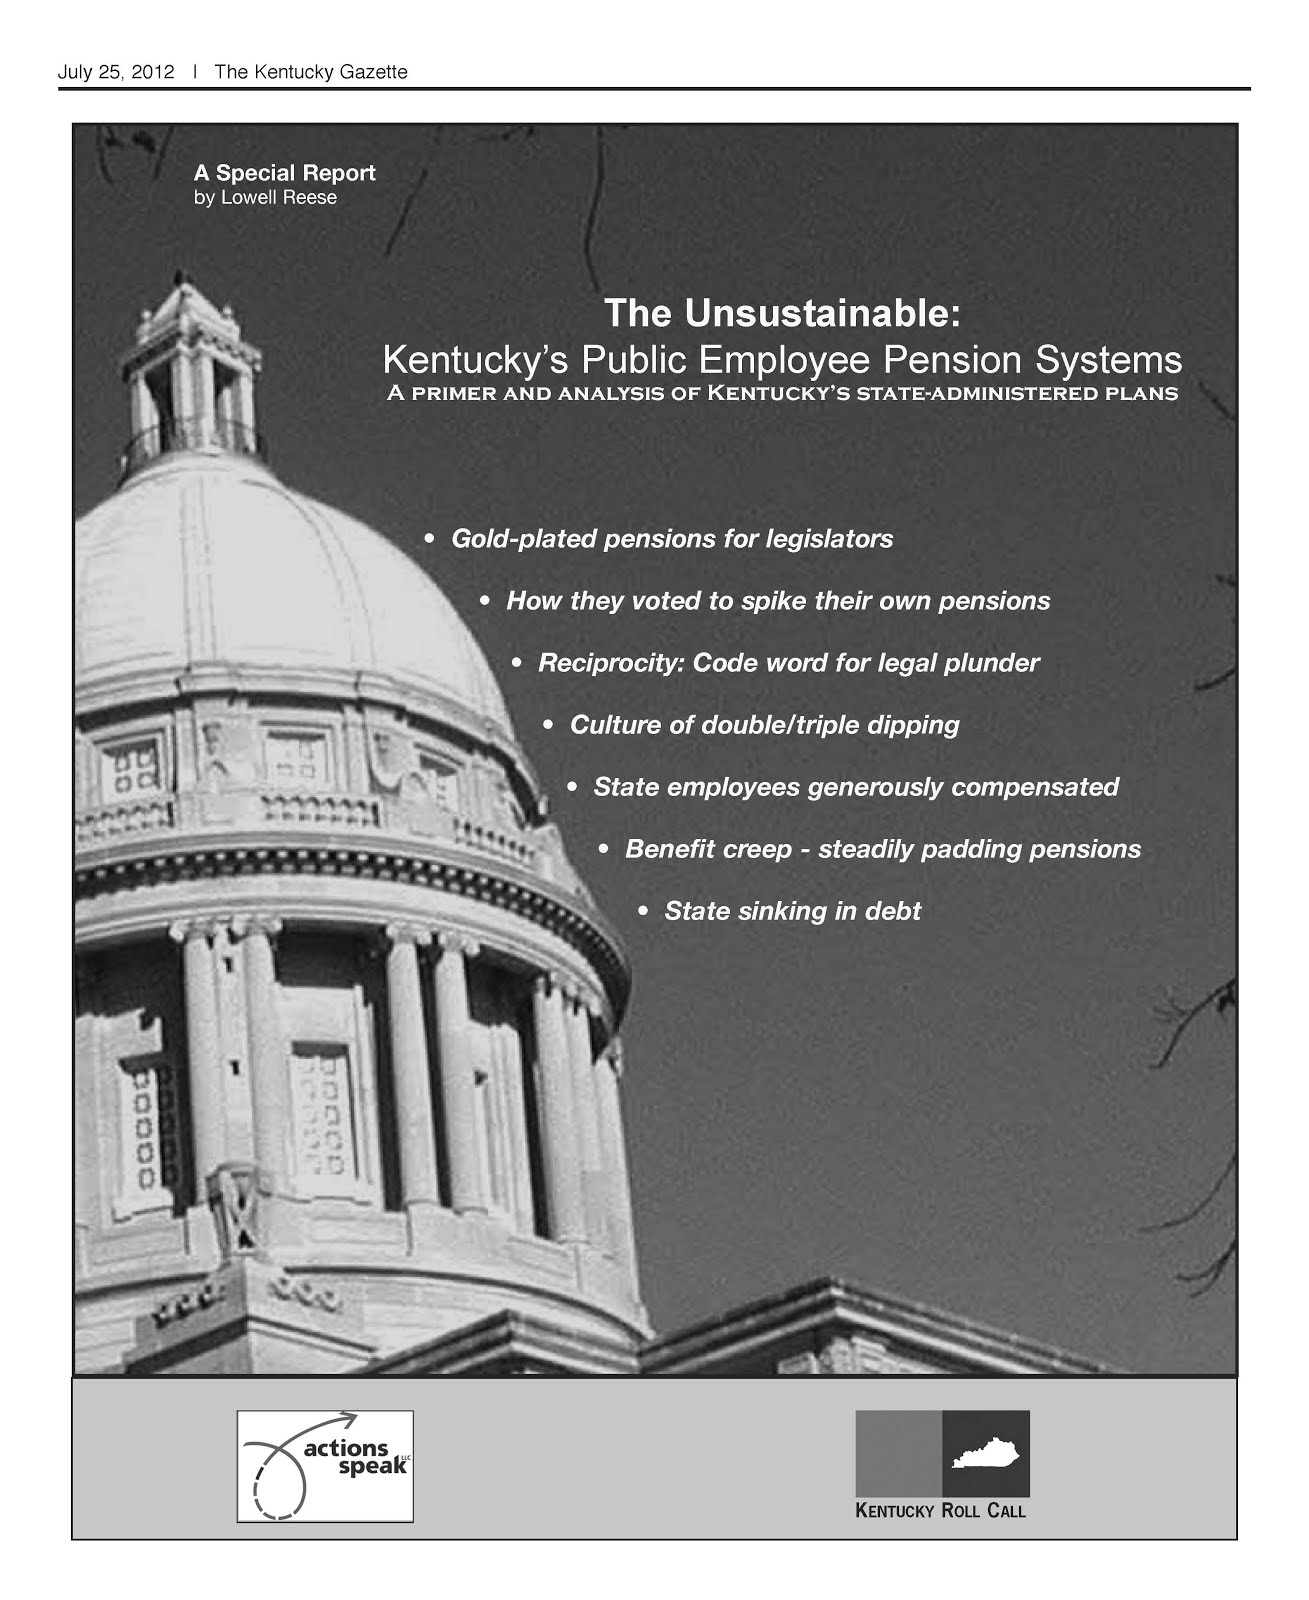 Kentucky's public employee pensions: A primer on the state's six systems and abuses